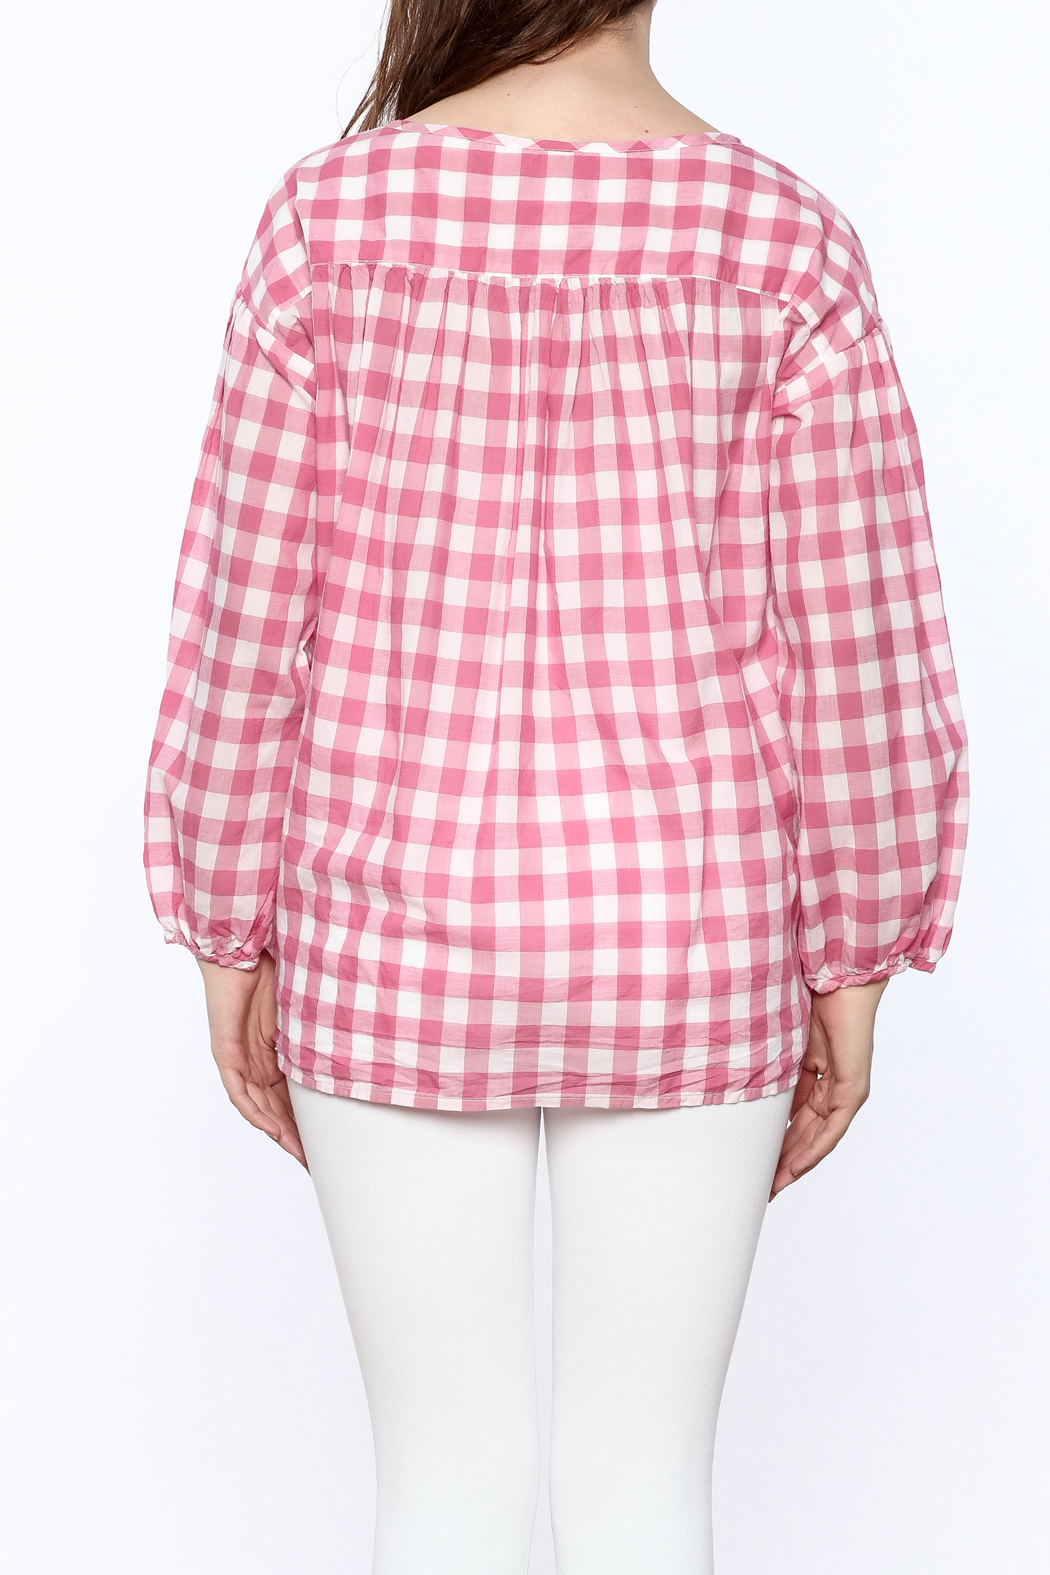 P.S. Shirt Pink Gingham Blouse - Back Cropped Image